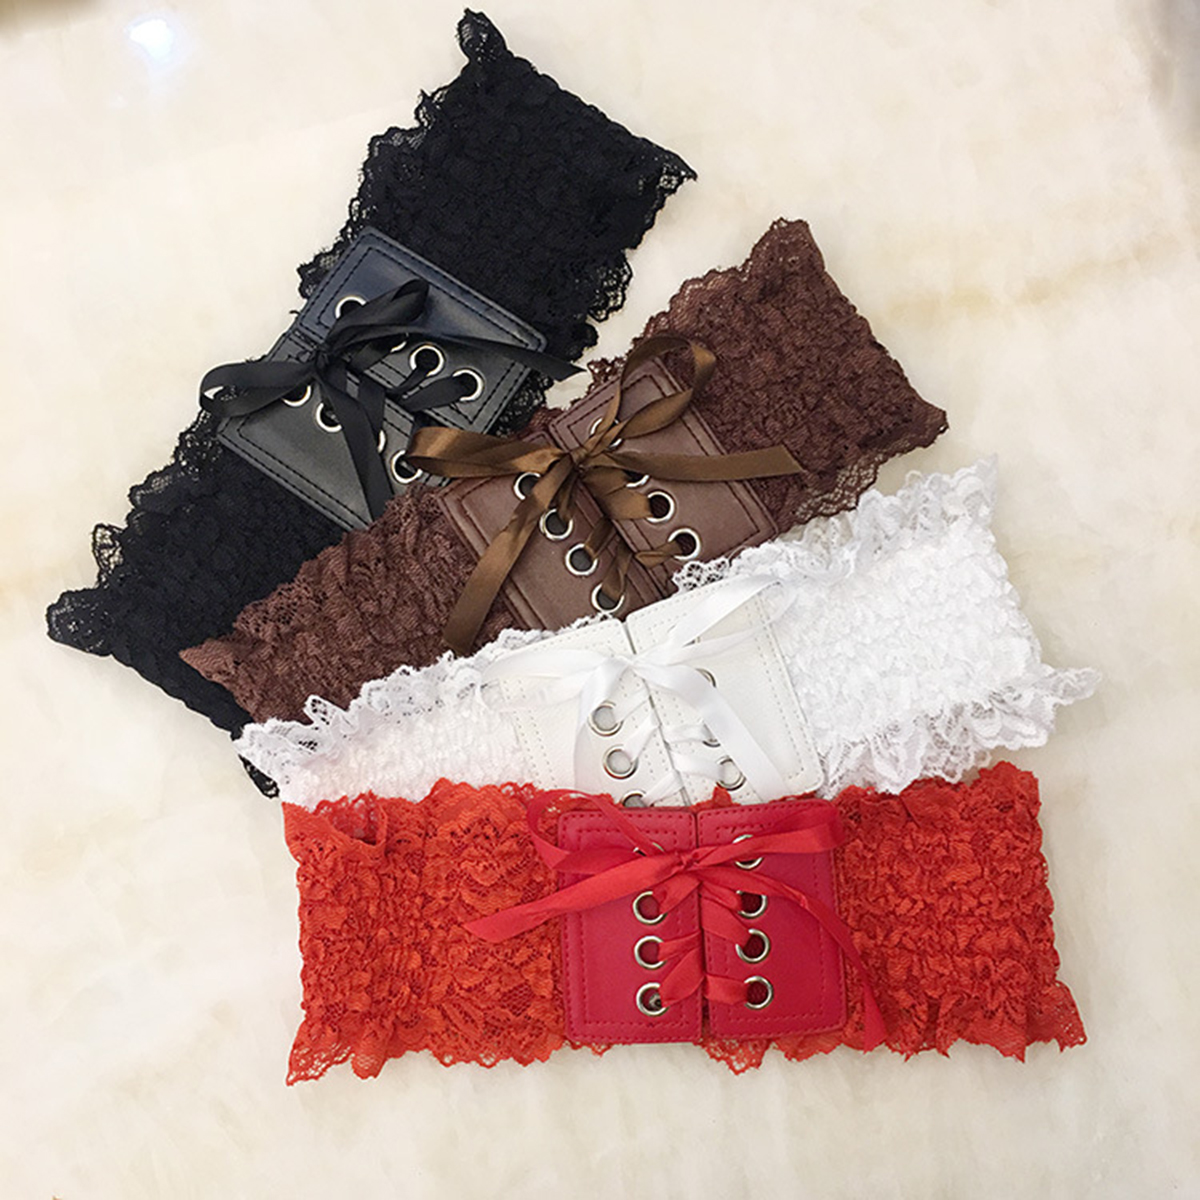 Jastie Boho Chic Lace Cummerbunds Fashion Women Corset Belt Casual Elastic Waistband With Button Wide Girdle Belt Femme 2019